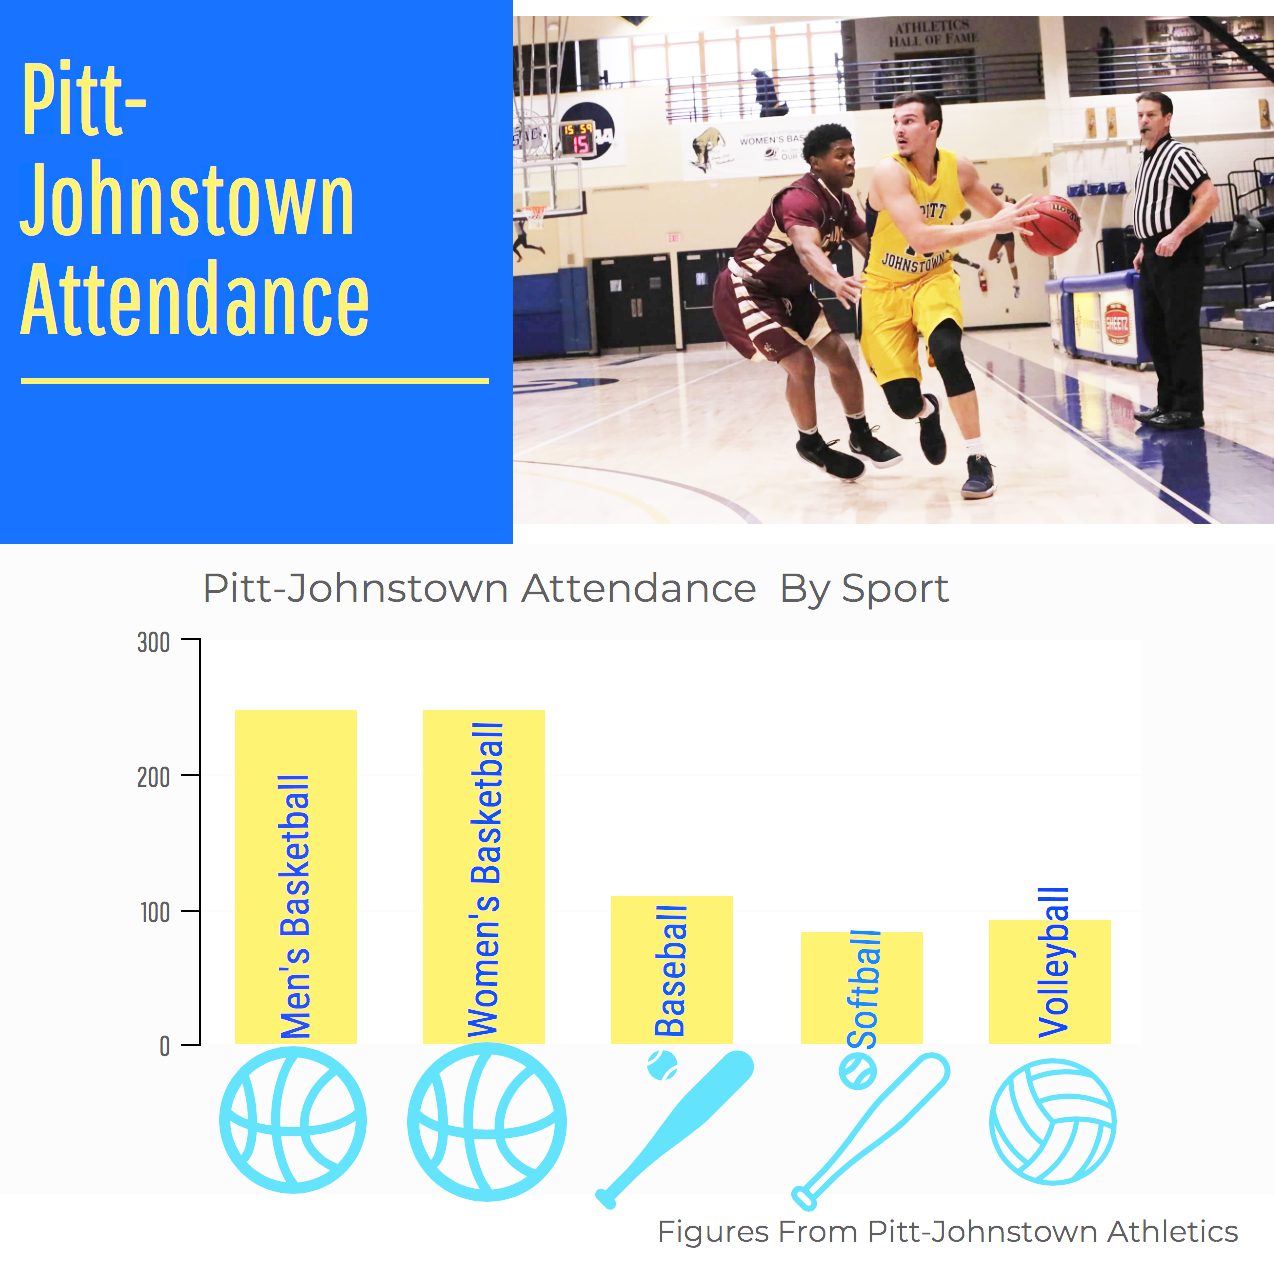 Attendance figures for 2018 for women's and men's basketball and 2017 for basball, softball and volleyball.